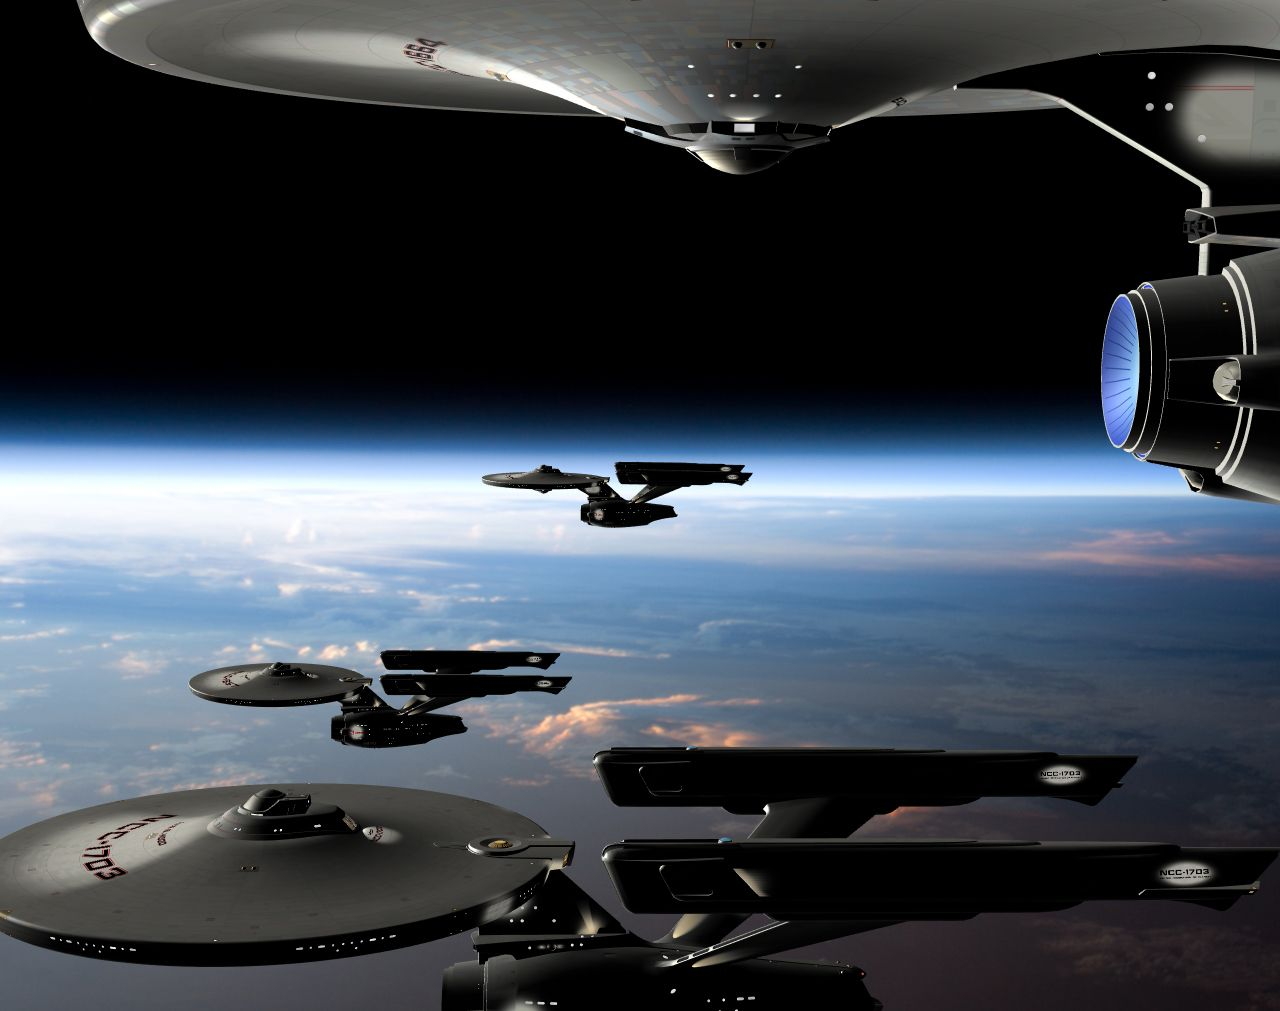 #STARFLEET INTELLIGENCE: Federation #starships in orbit ...